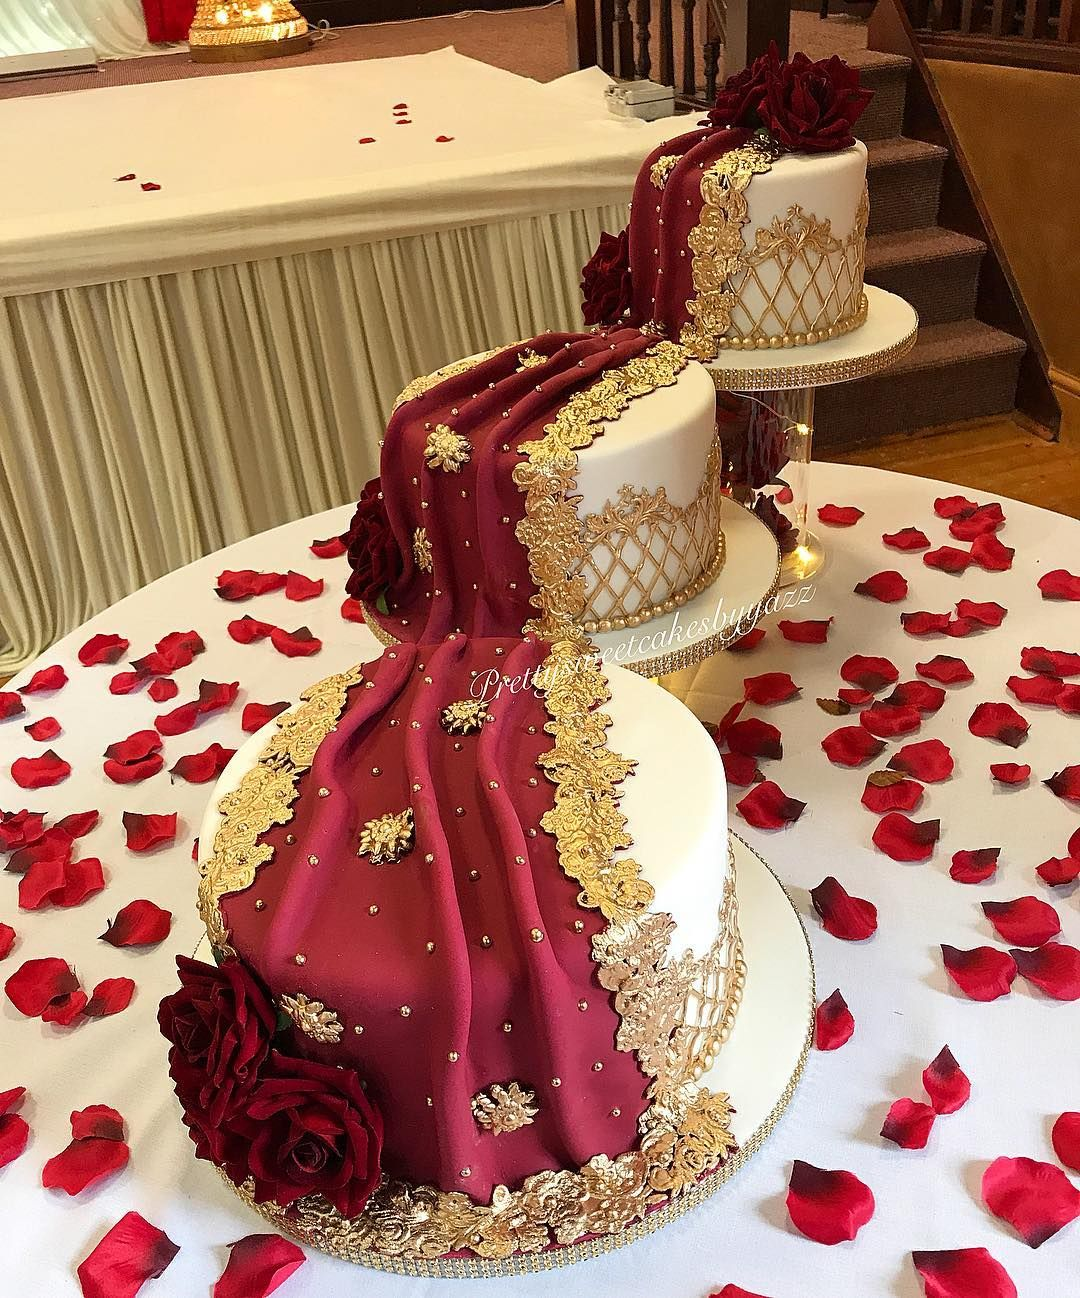 Wedding Cakes Inspired By China Patterns: Cakes By Yazz Prettysweetcakes (@prettysweetcakesbyyazz